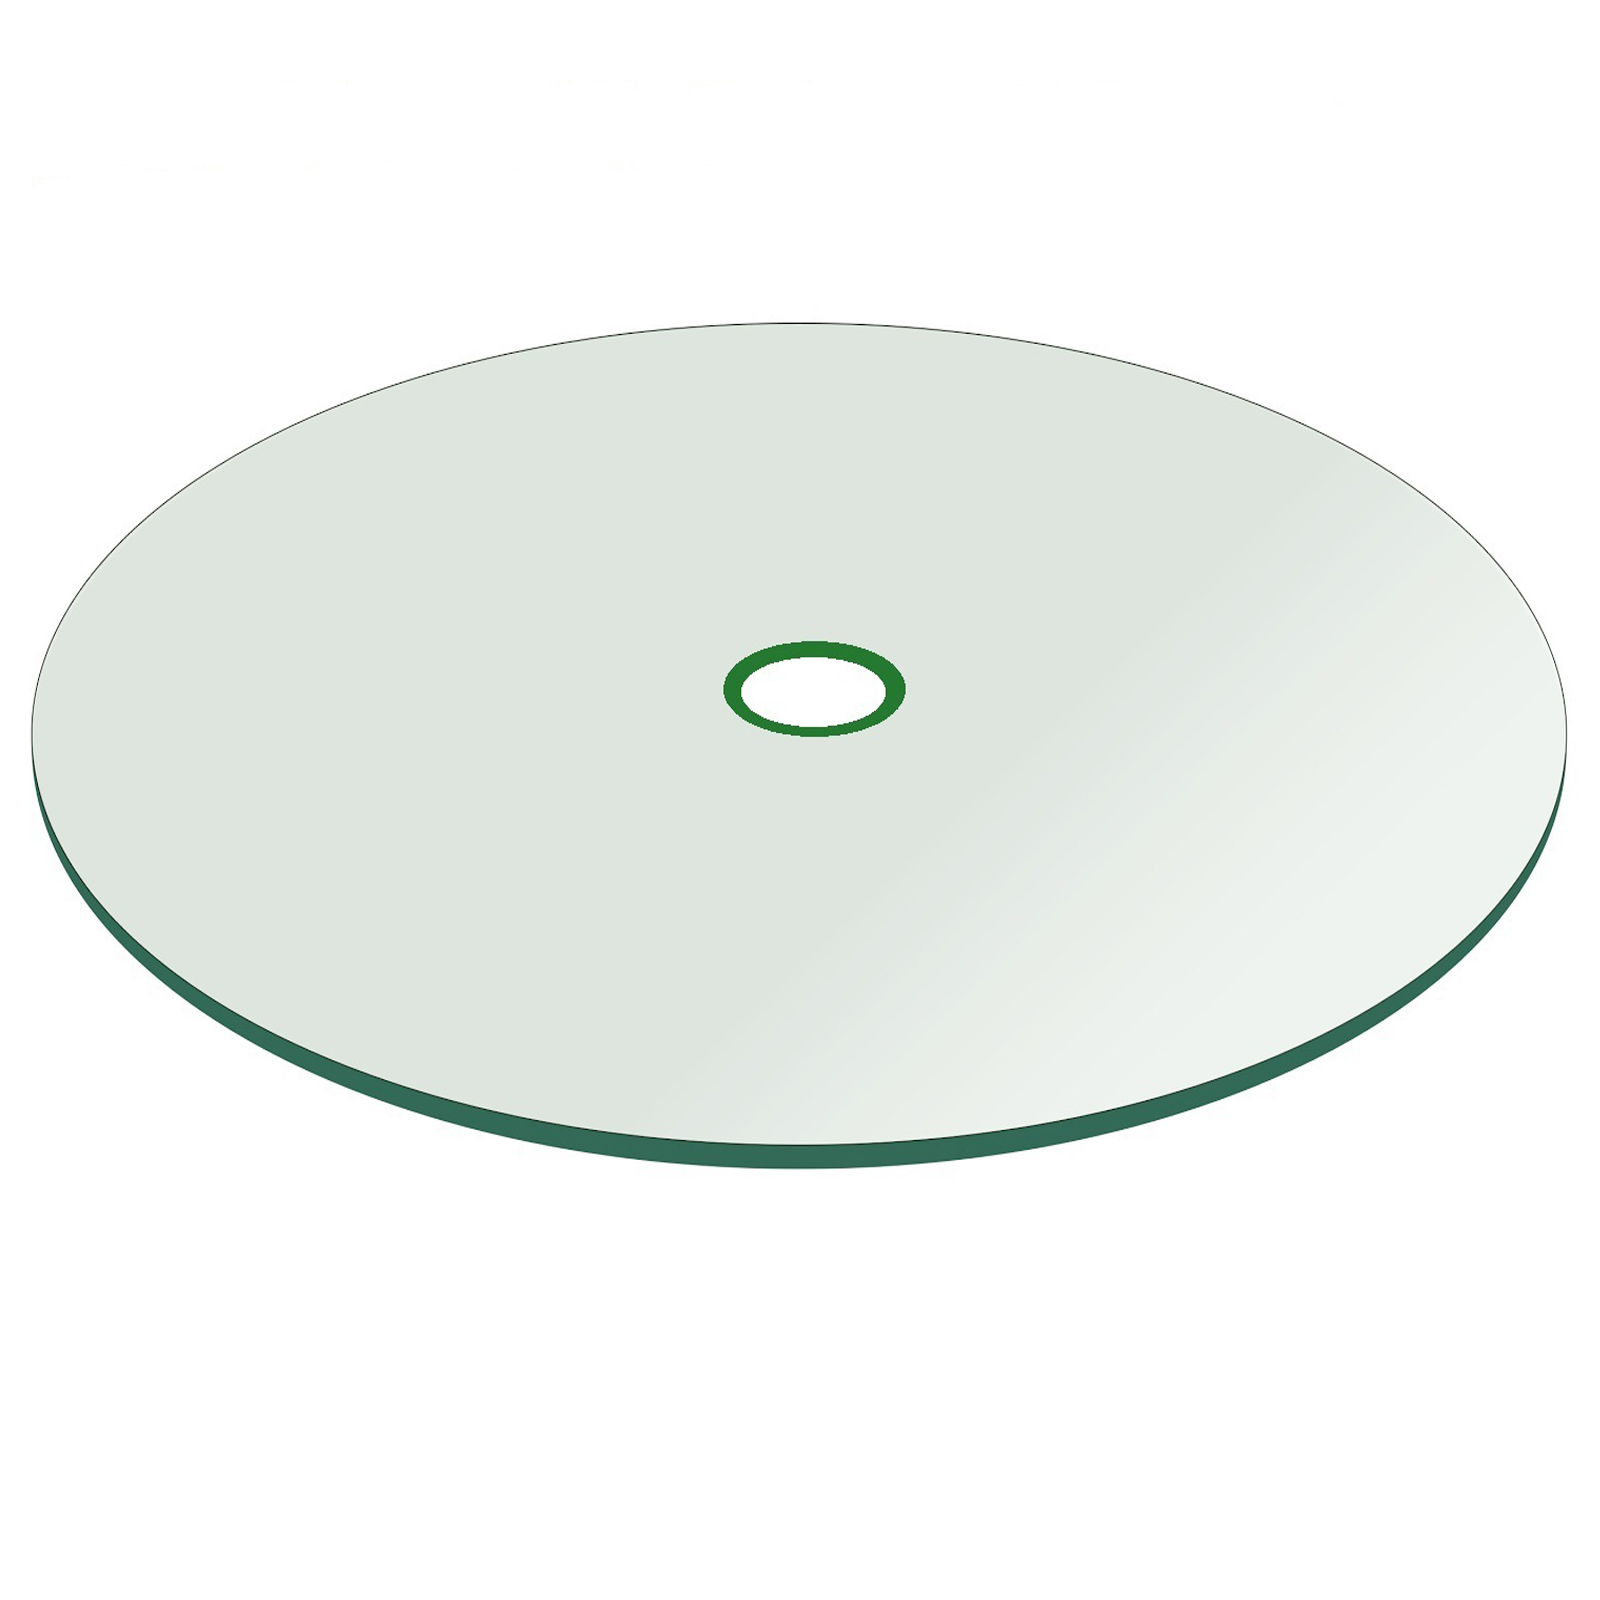 patio glass table top 48 round 1 4 thick flat tempered with 2 hole